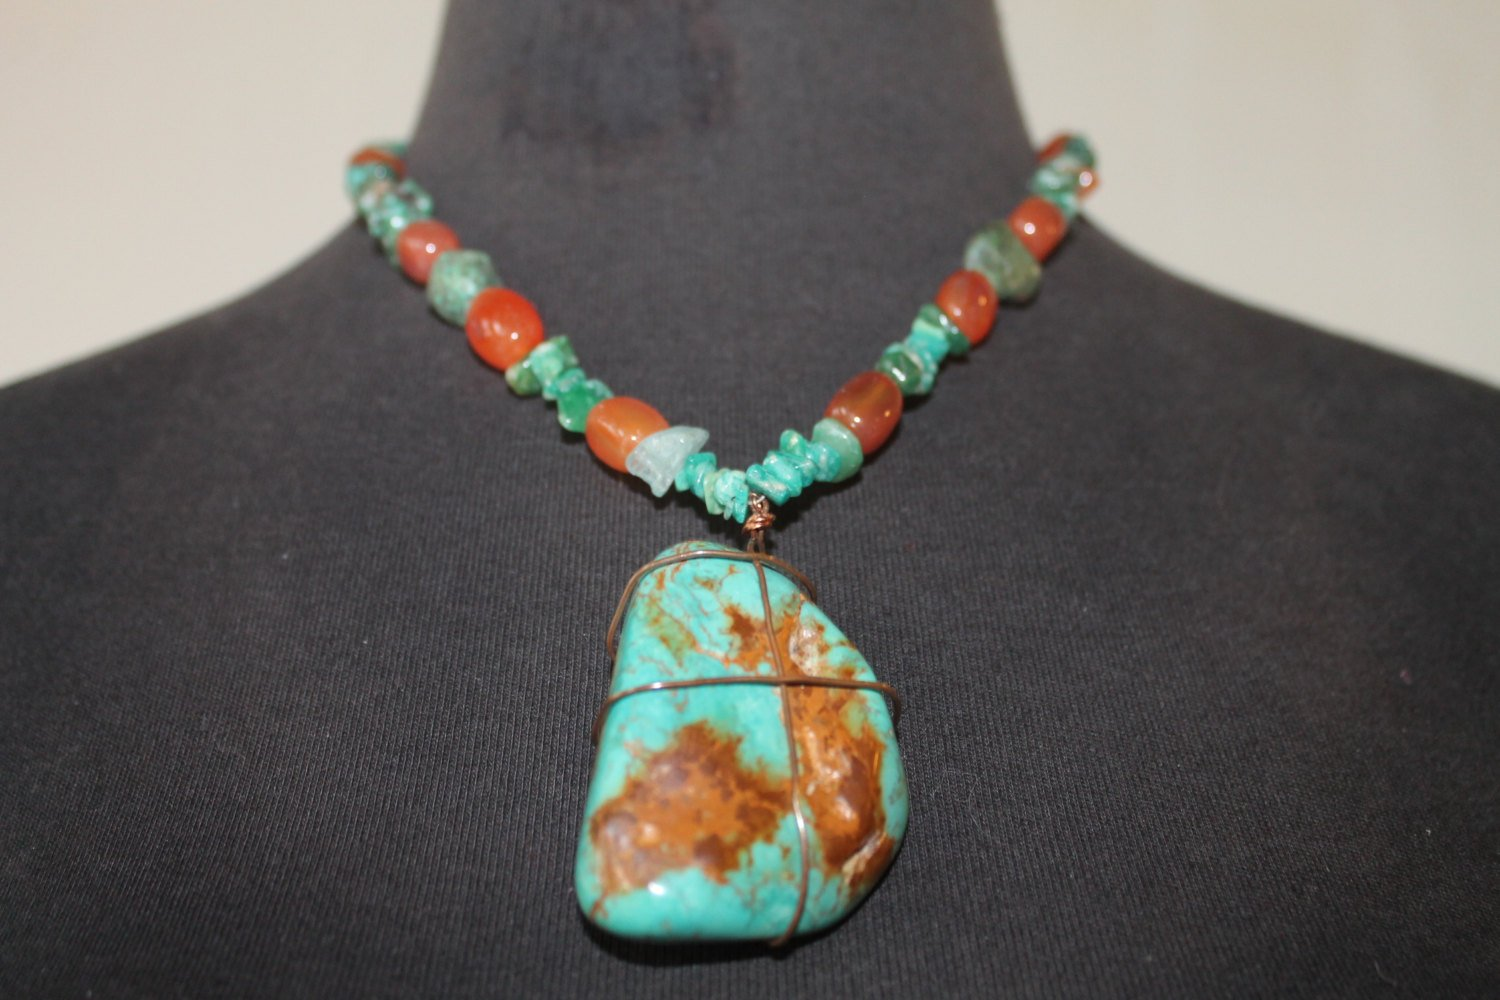 Turquoise wire wrapped necklace with carnelian and sterling silver clasp